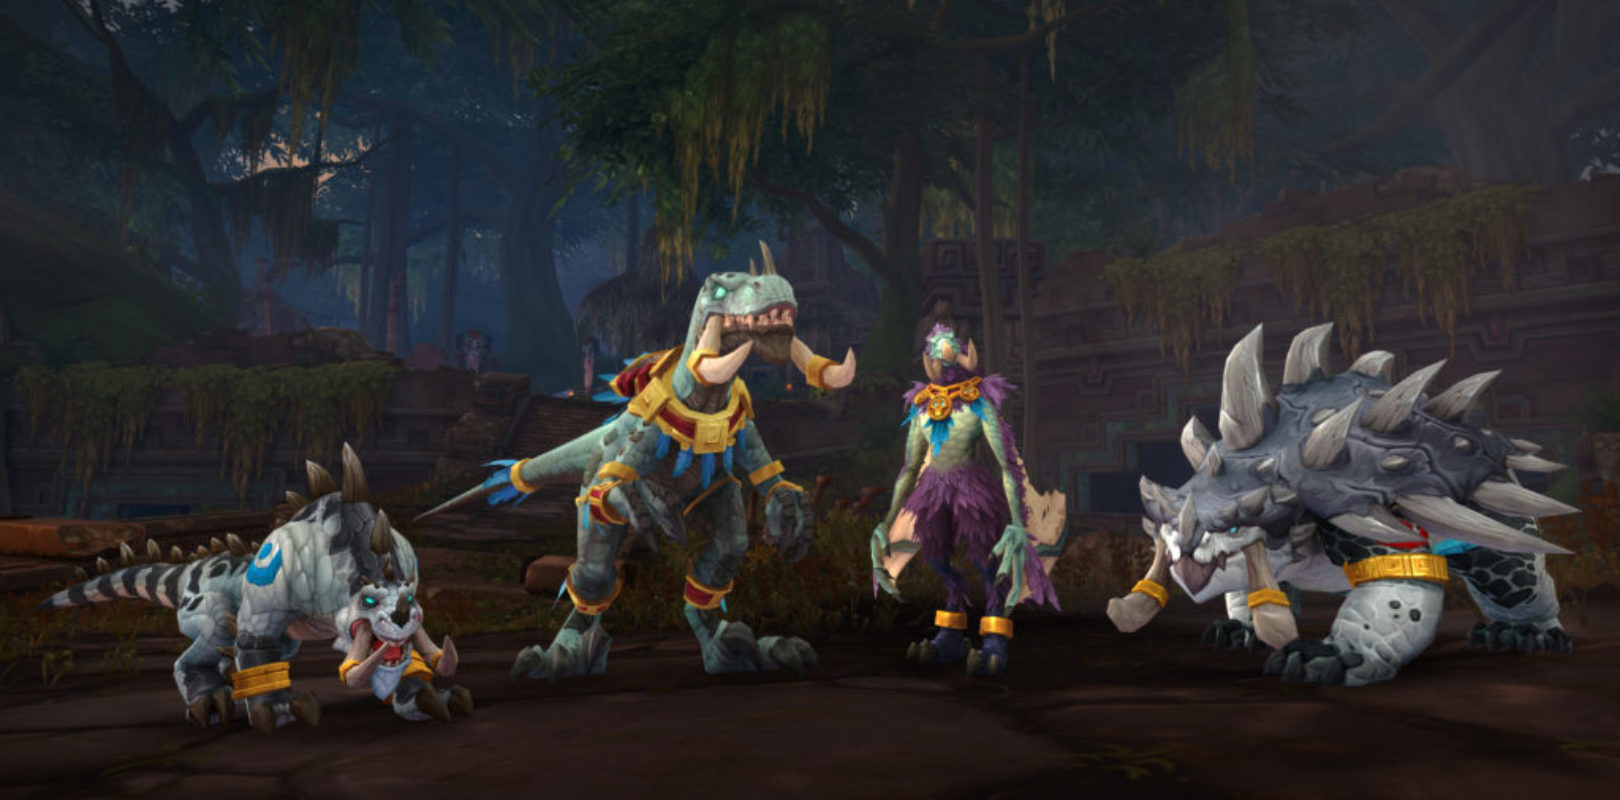 Allied Races, Q&A, and Character Service Sales, Oh My! But